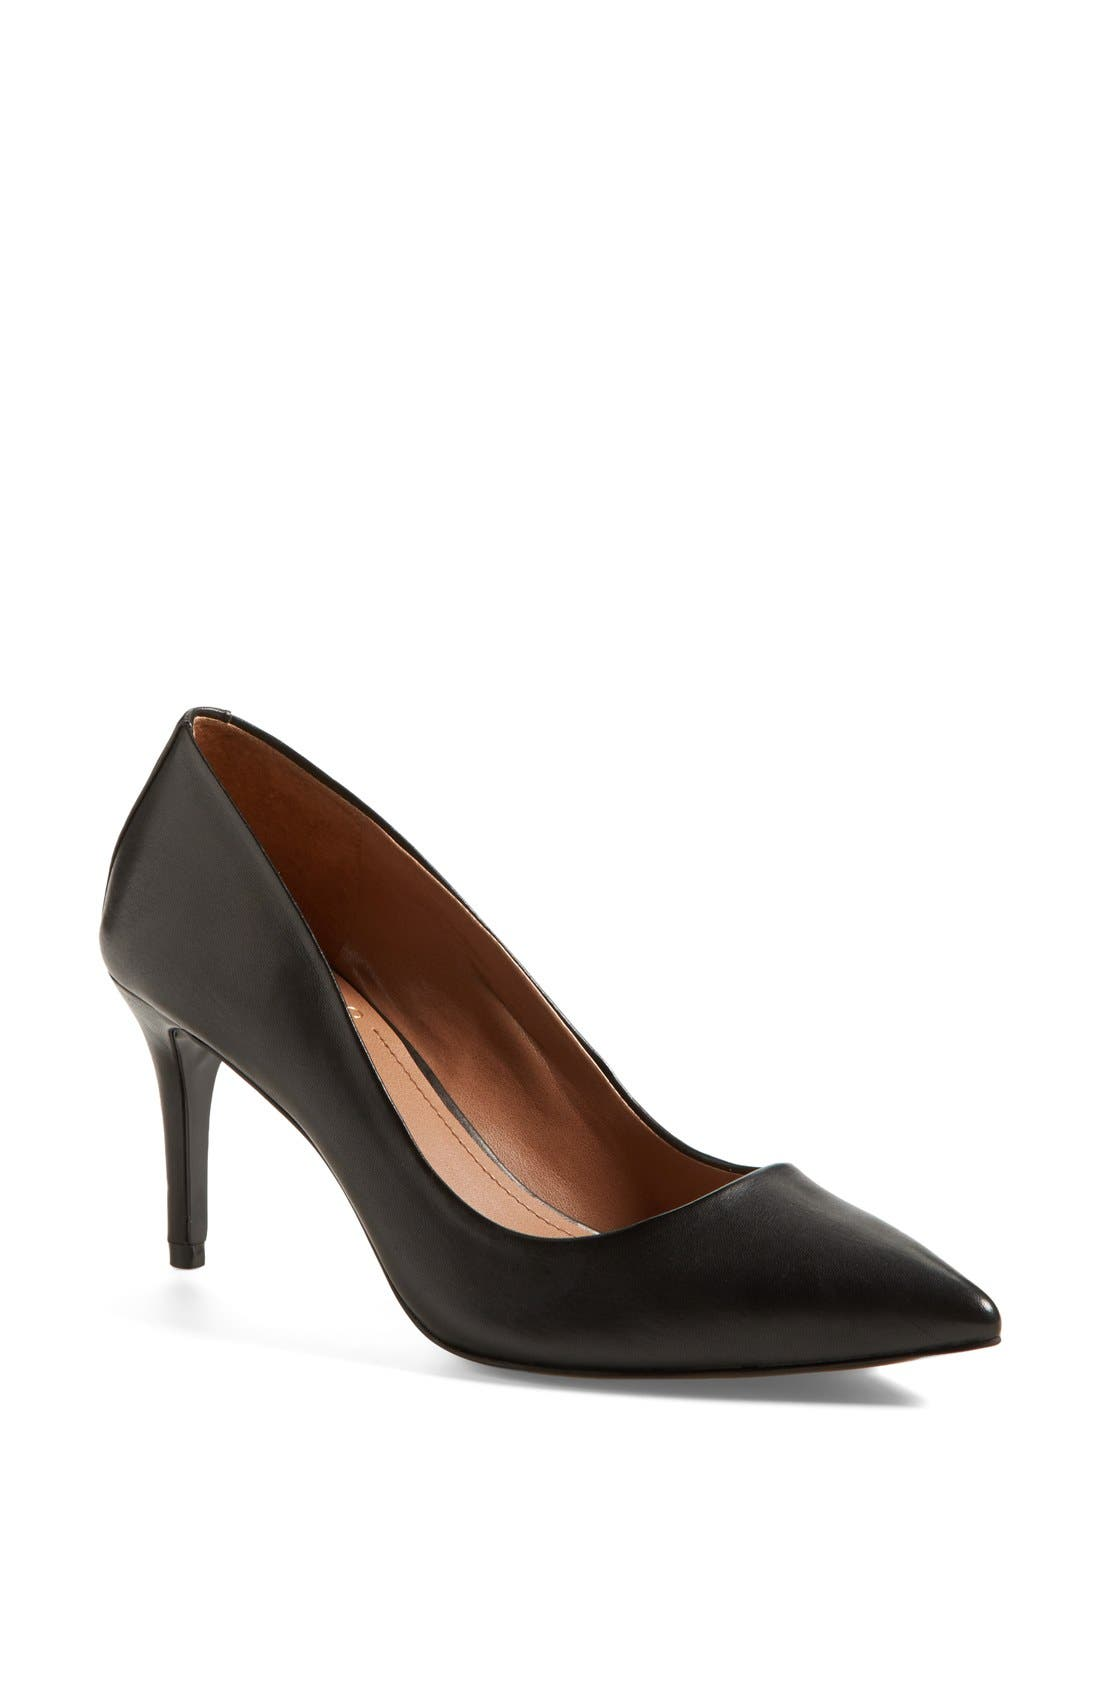 Alternate Image 1 Selected - Vince Camuto 'Caprita' Leather Pointy Toe Pump (Nordstrom Exclusive) (Women)